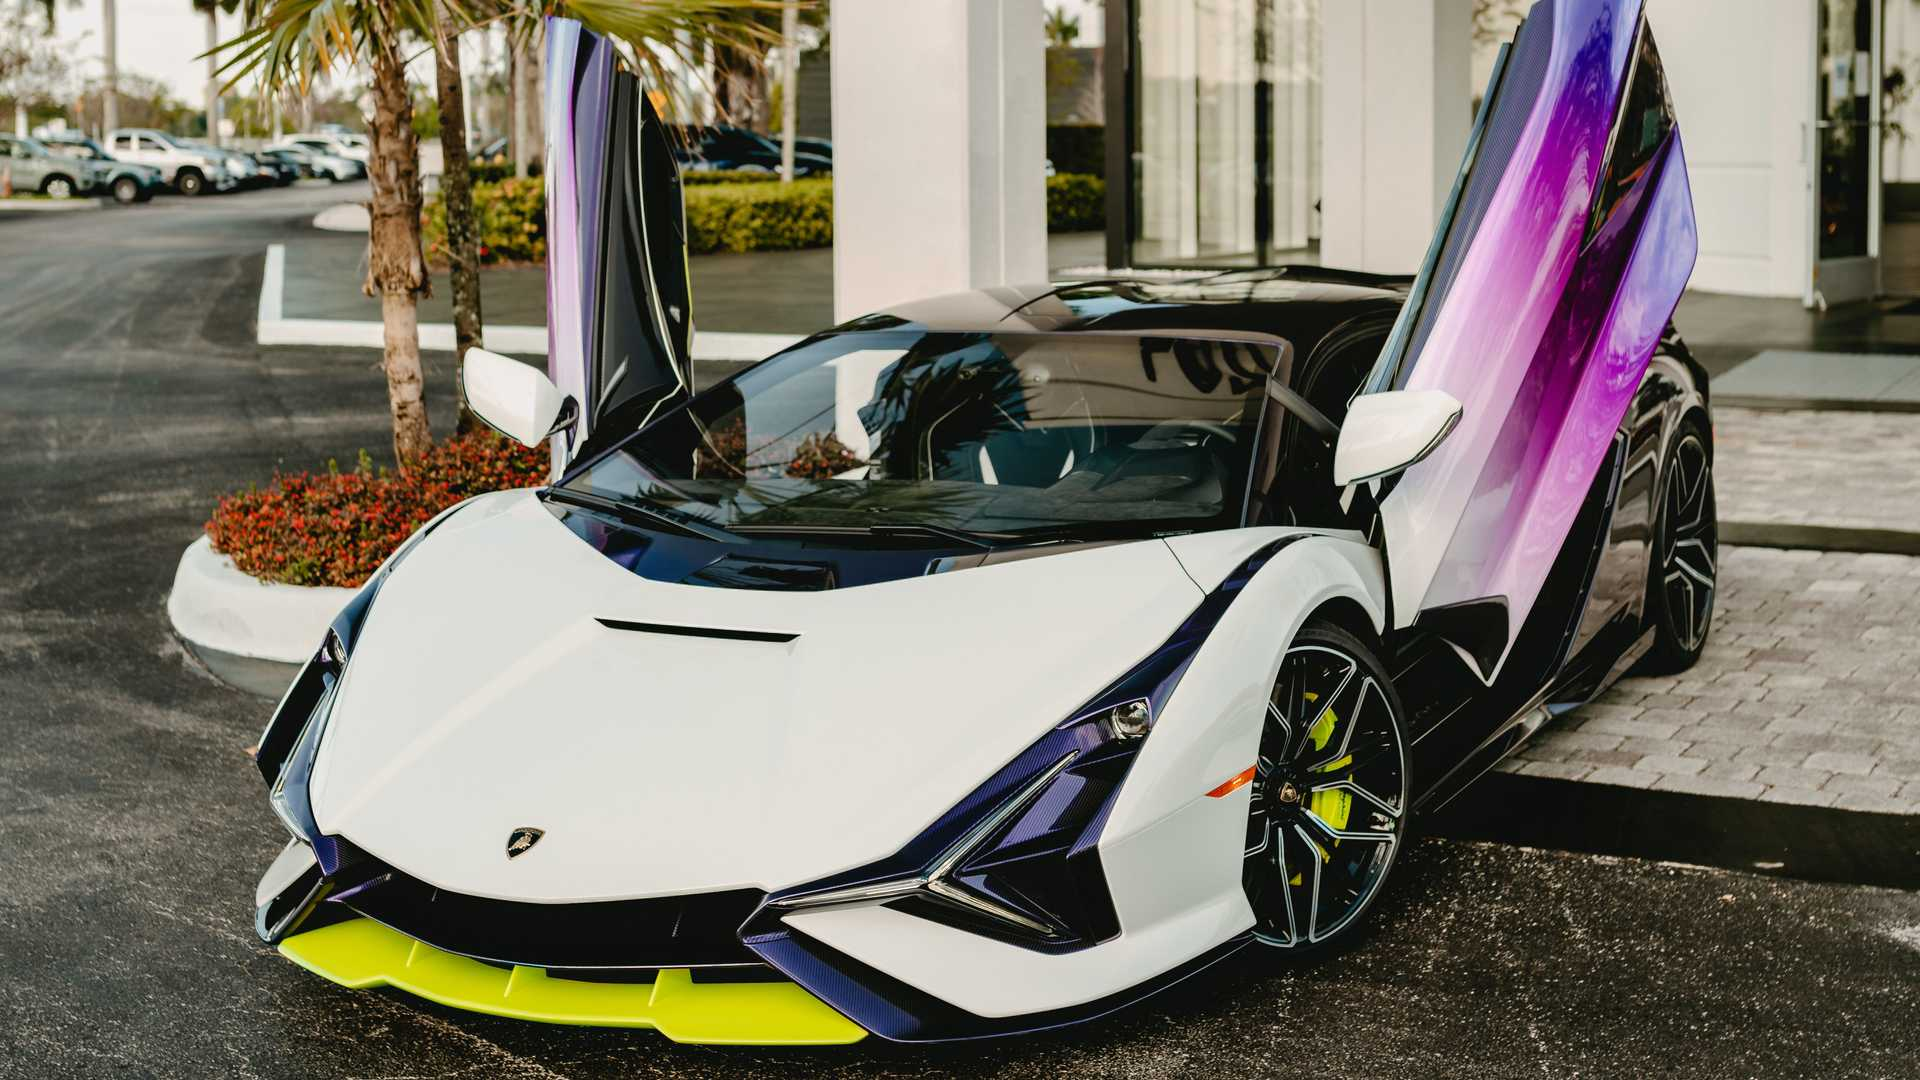 Lamborghini Sian In Purple, Green, And White High Angle Door Up Photo By Juan Pablo Saenz